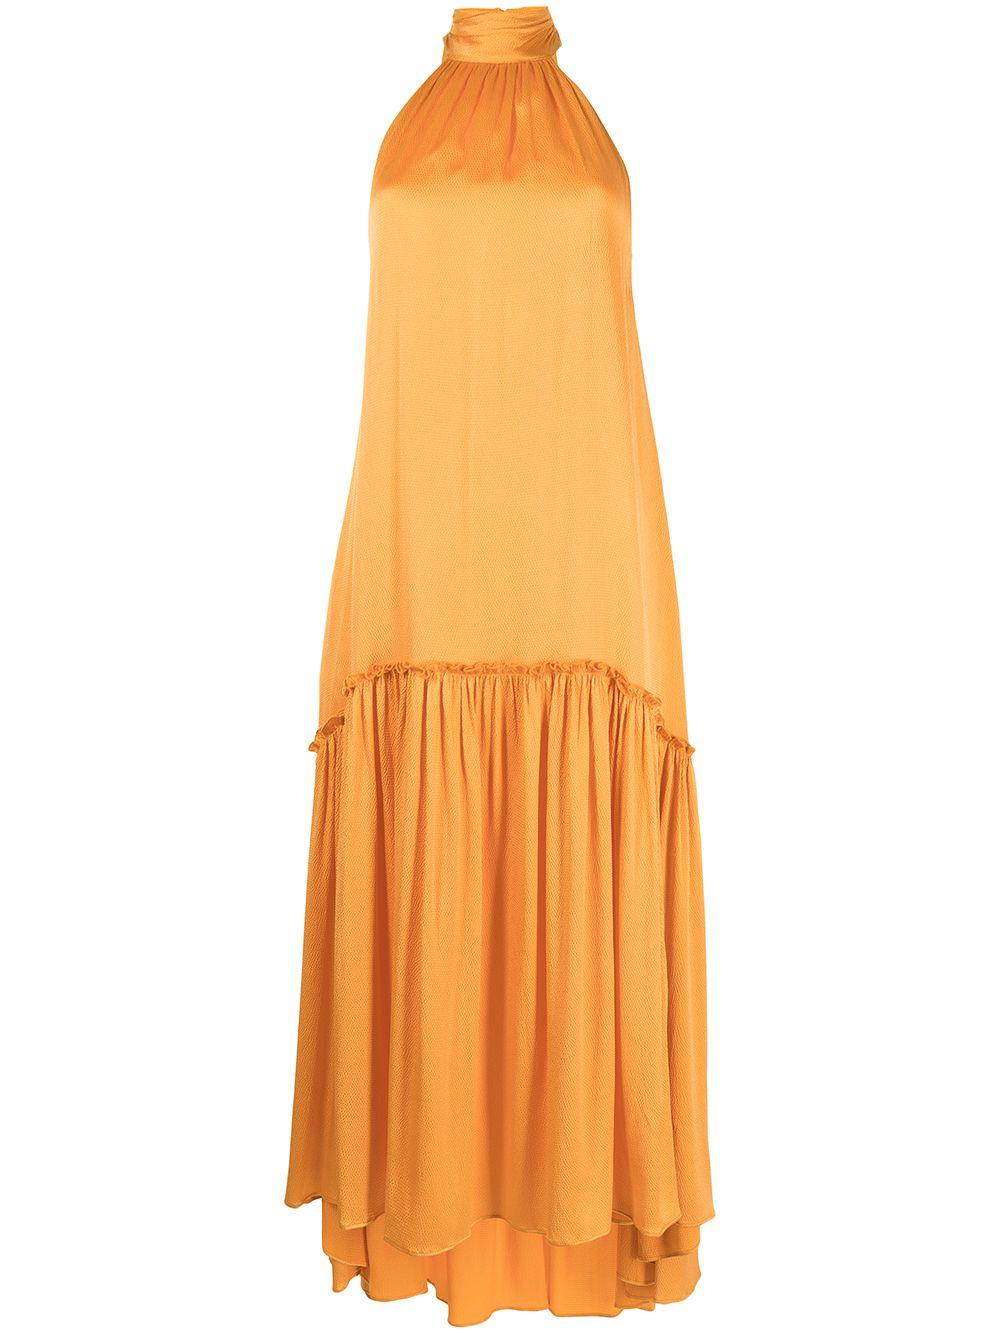 Anessa Hammered Silk Maxi Dress Item # 221-1070-S